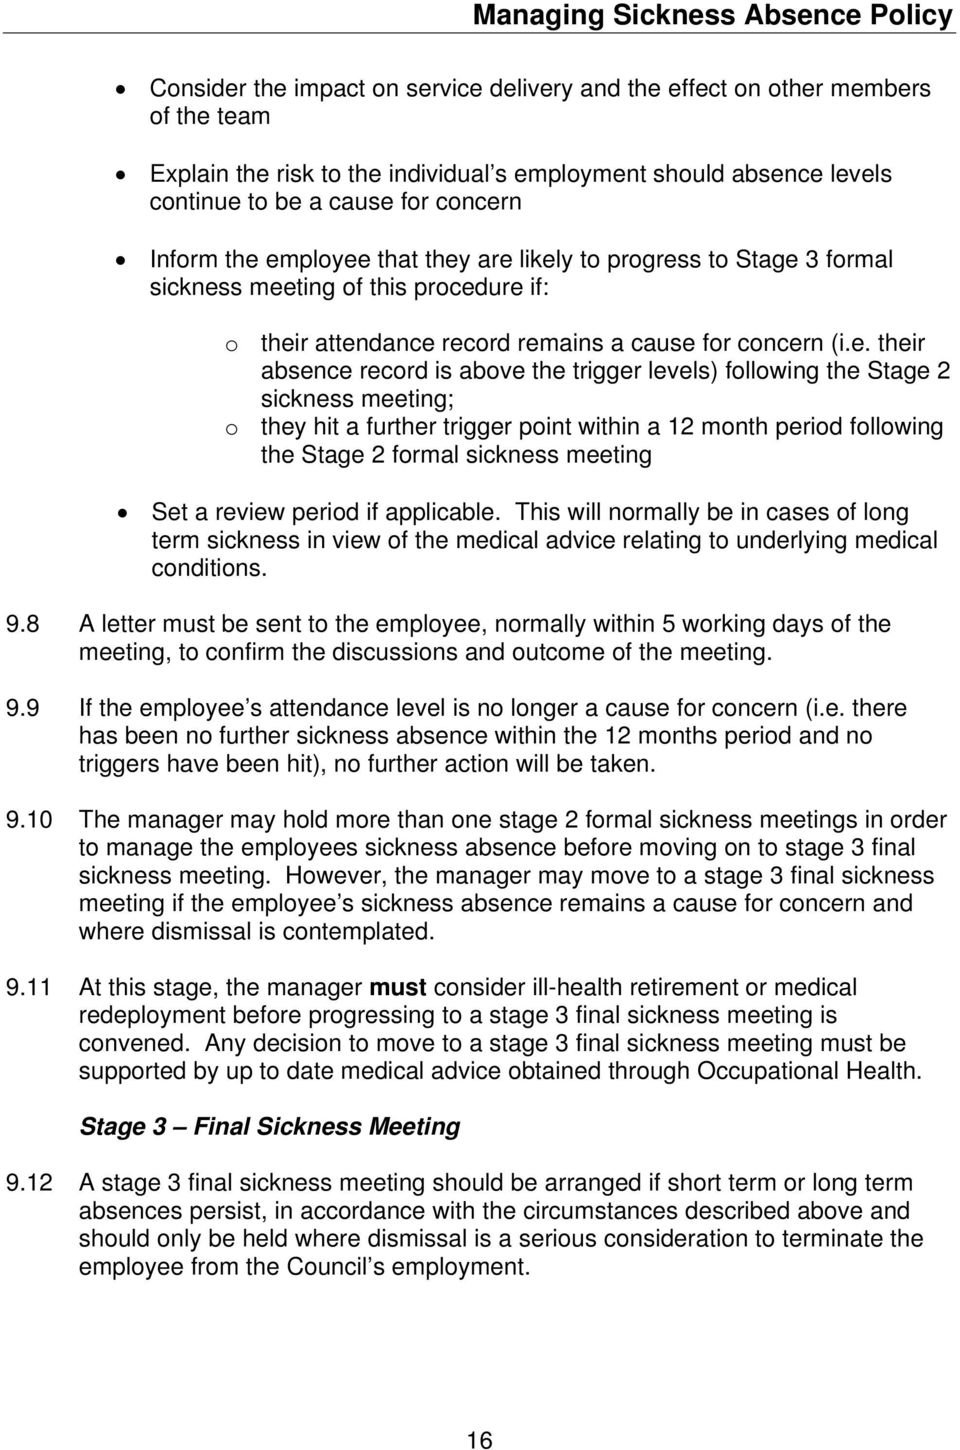 trigger levels) following the Stage 2 sickness meeting; o they hit a further trigger point within a 12 month period following the Stage 2 formal sickness meeting Set a review period if applicable.